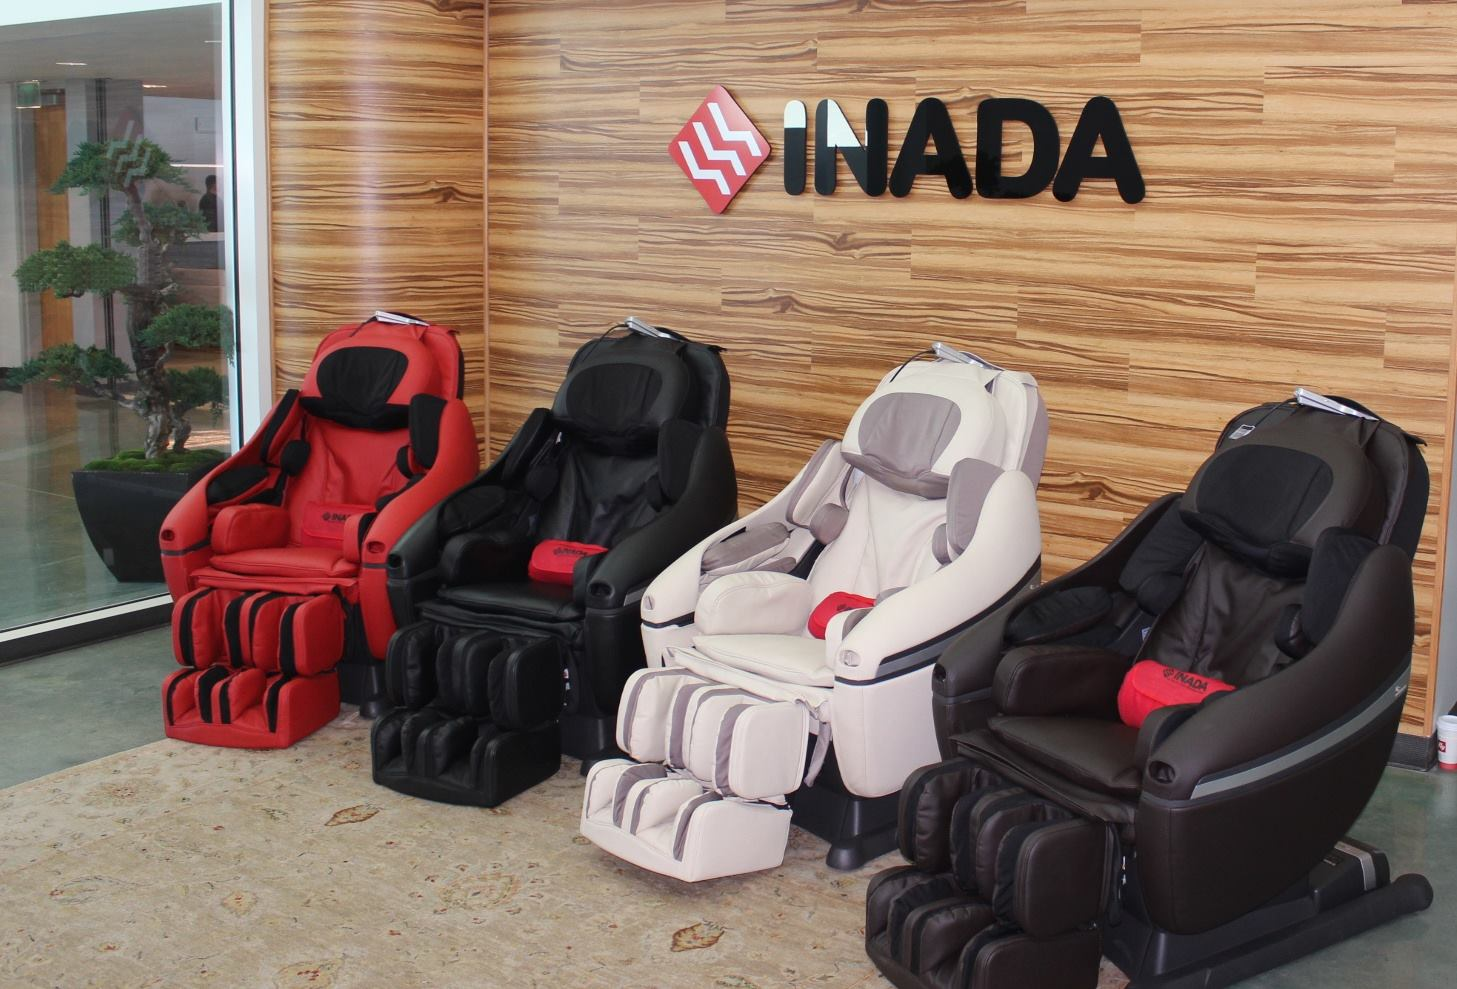 Inada Massage Chairs at Costco Fullerton